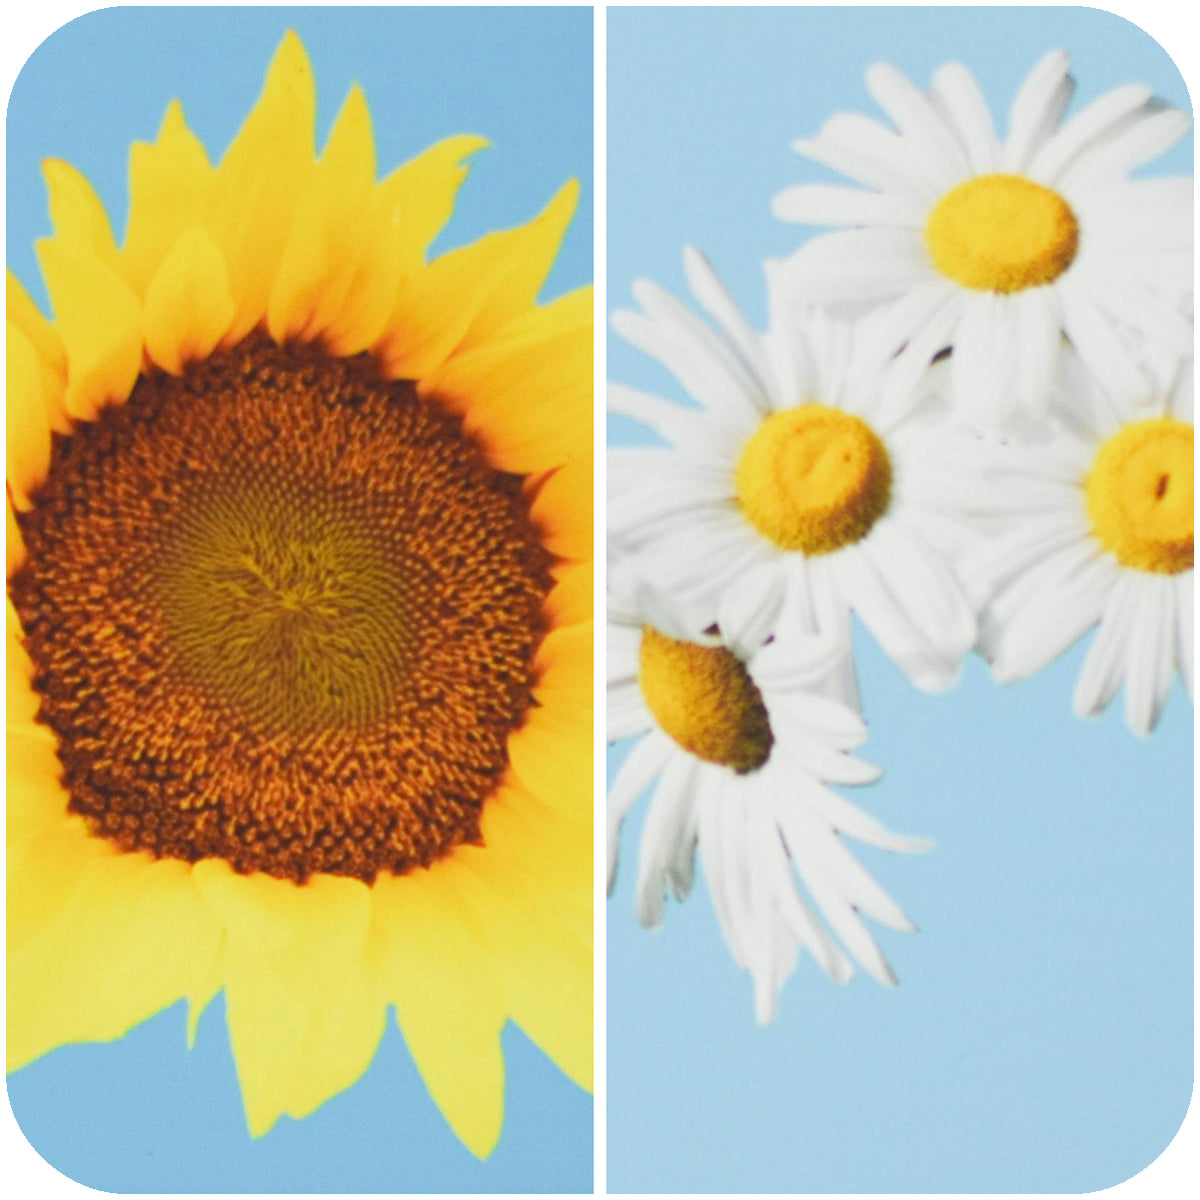 Standard view of sunflower & daisy coasters | Wear the Wonder